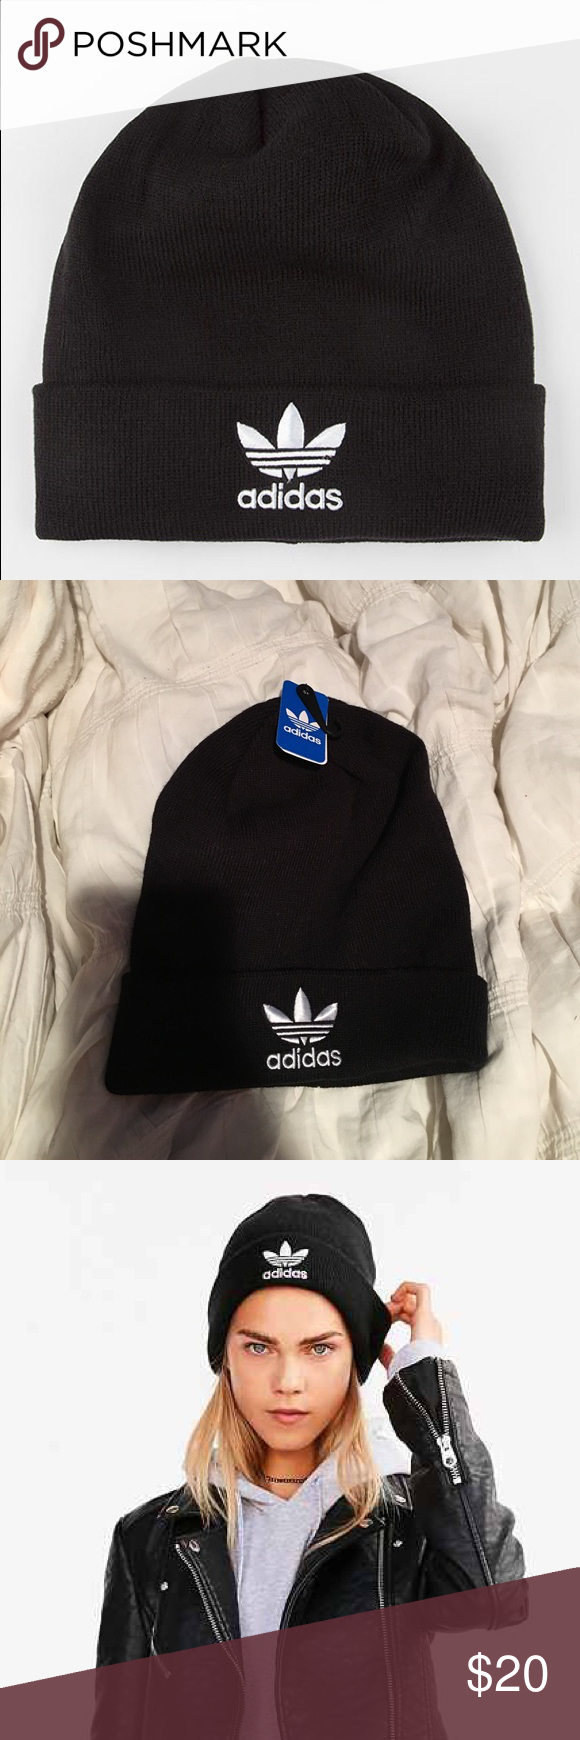 Adidas Trefoil Beanie Black Adidas Trefoil Knit Beanie. Brand new   super  cute Would be happy to post more pictures upon request 📷 Always willing to  ... 45a45e2e9994